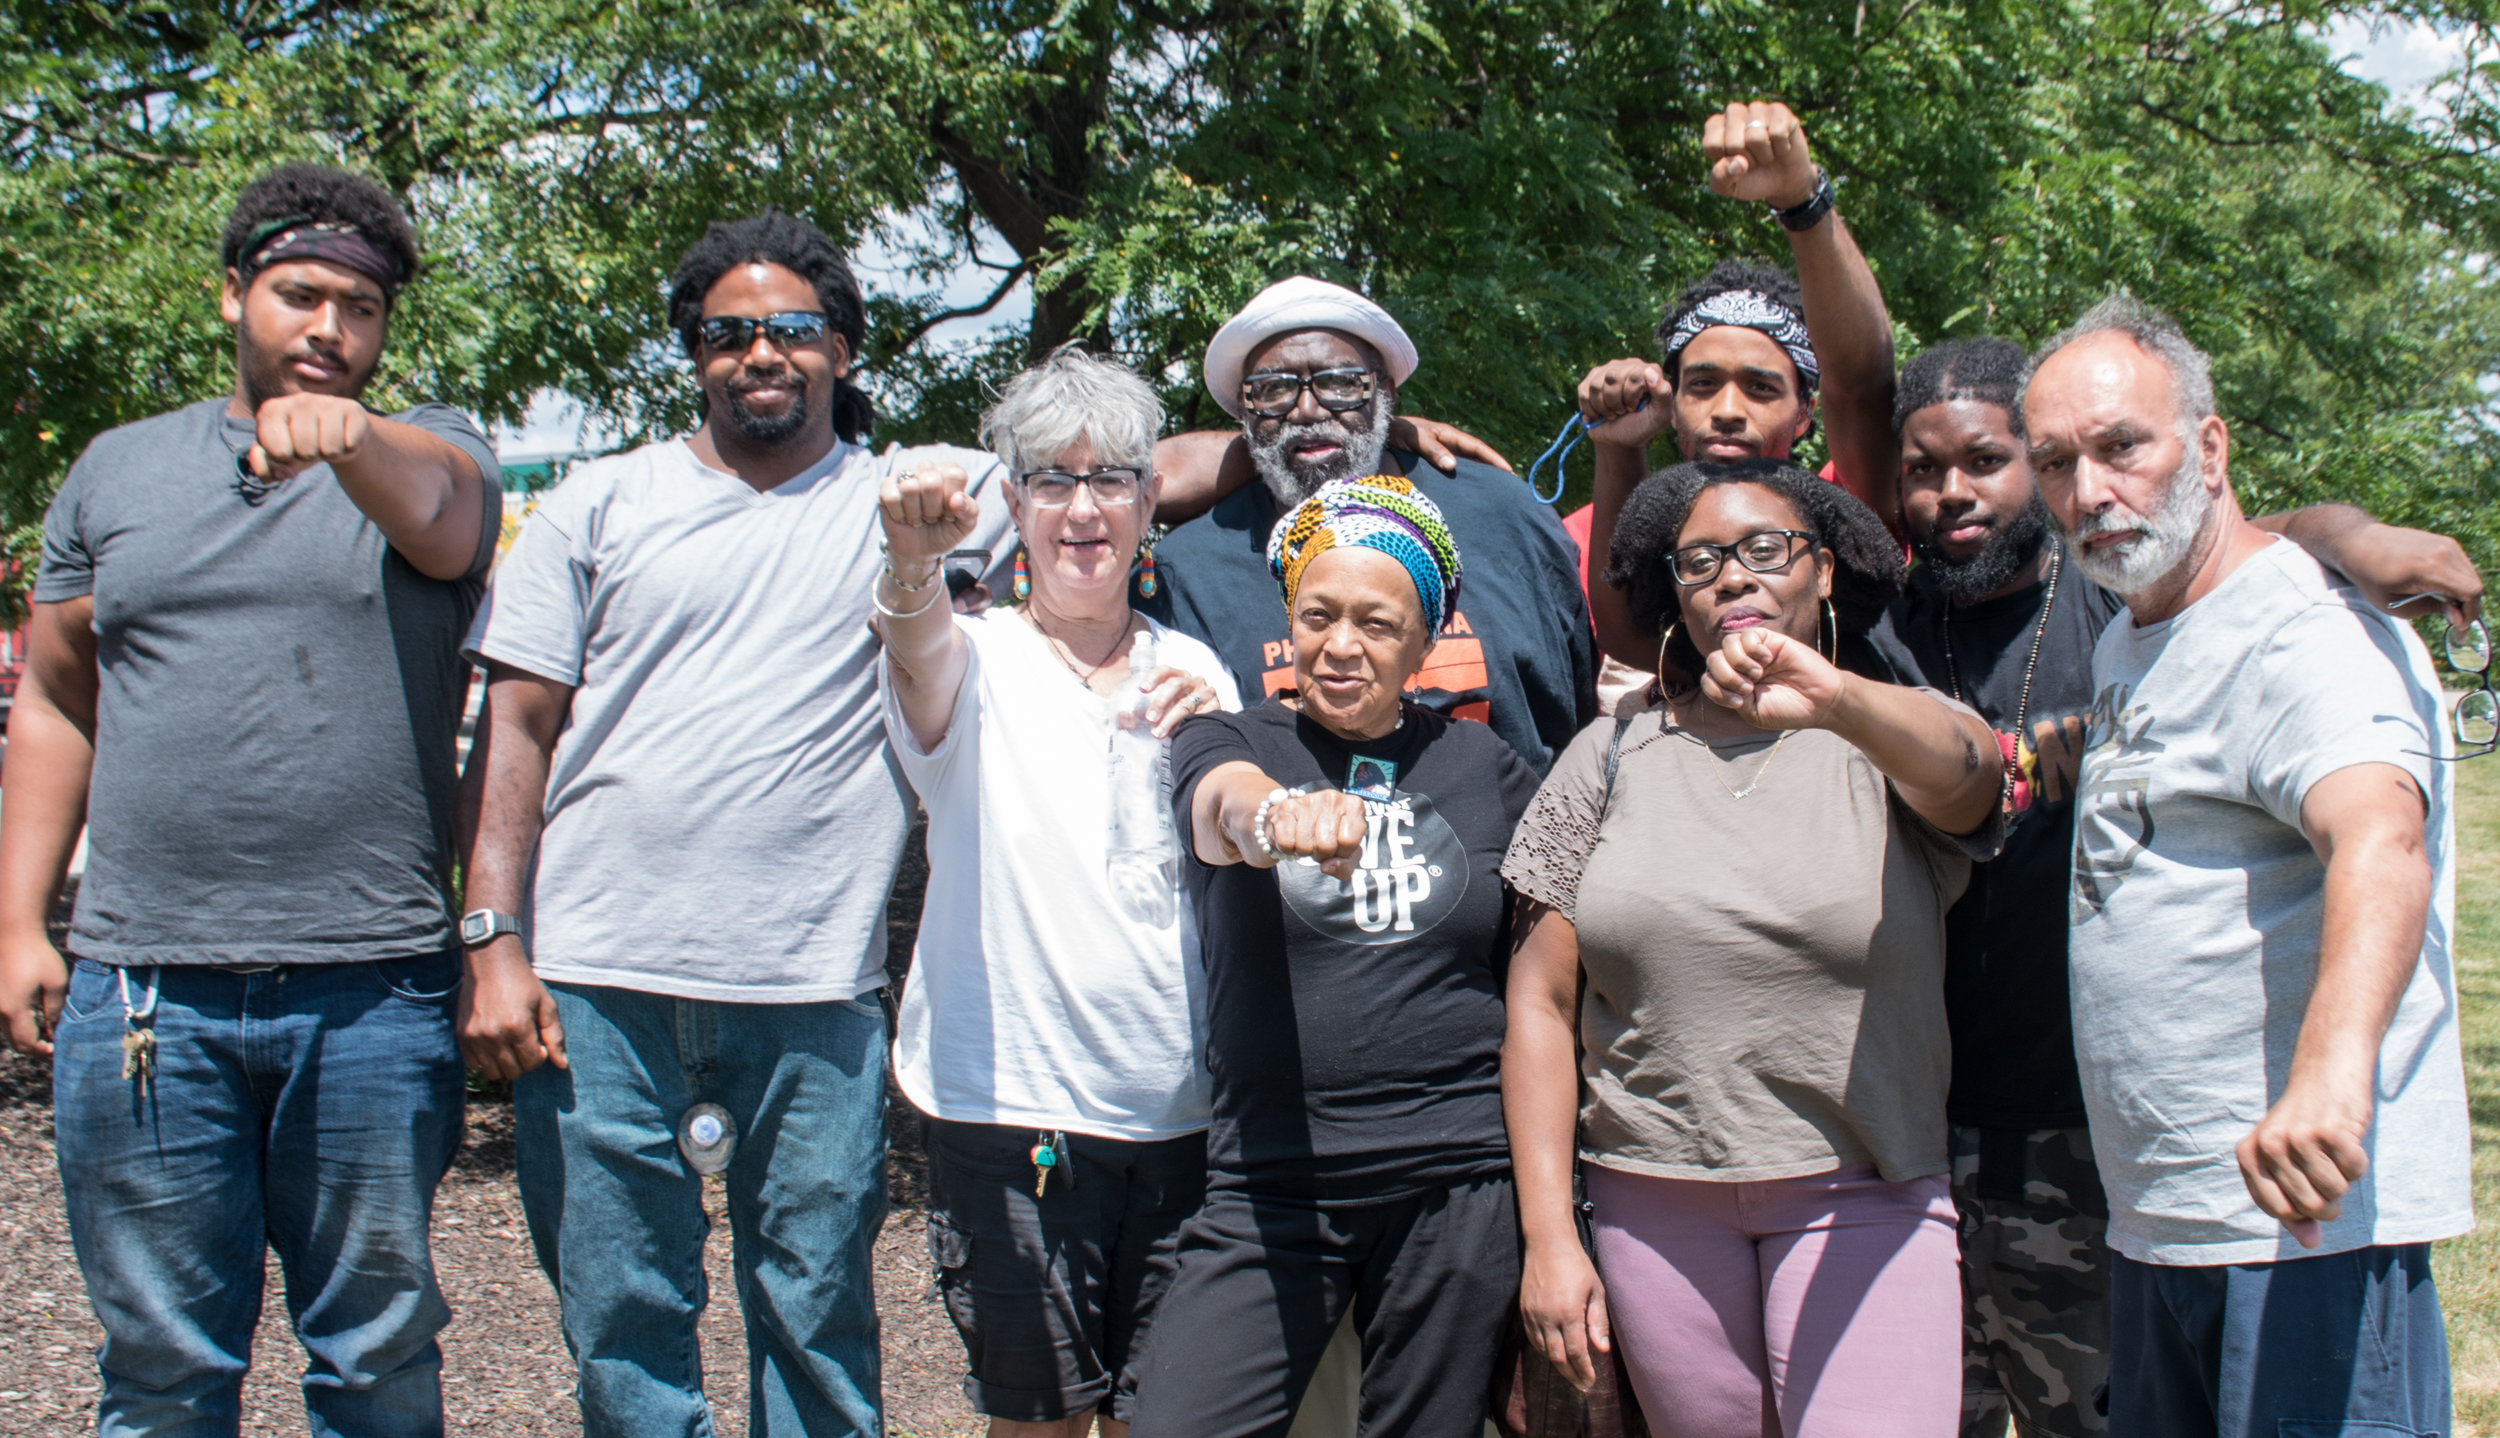 Supporters for MOVE member Delbert Africa on Aug 9, 2019. Photo: Joe Piette